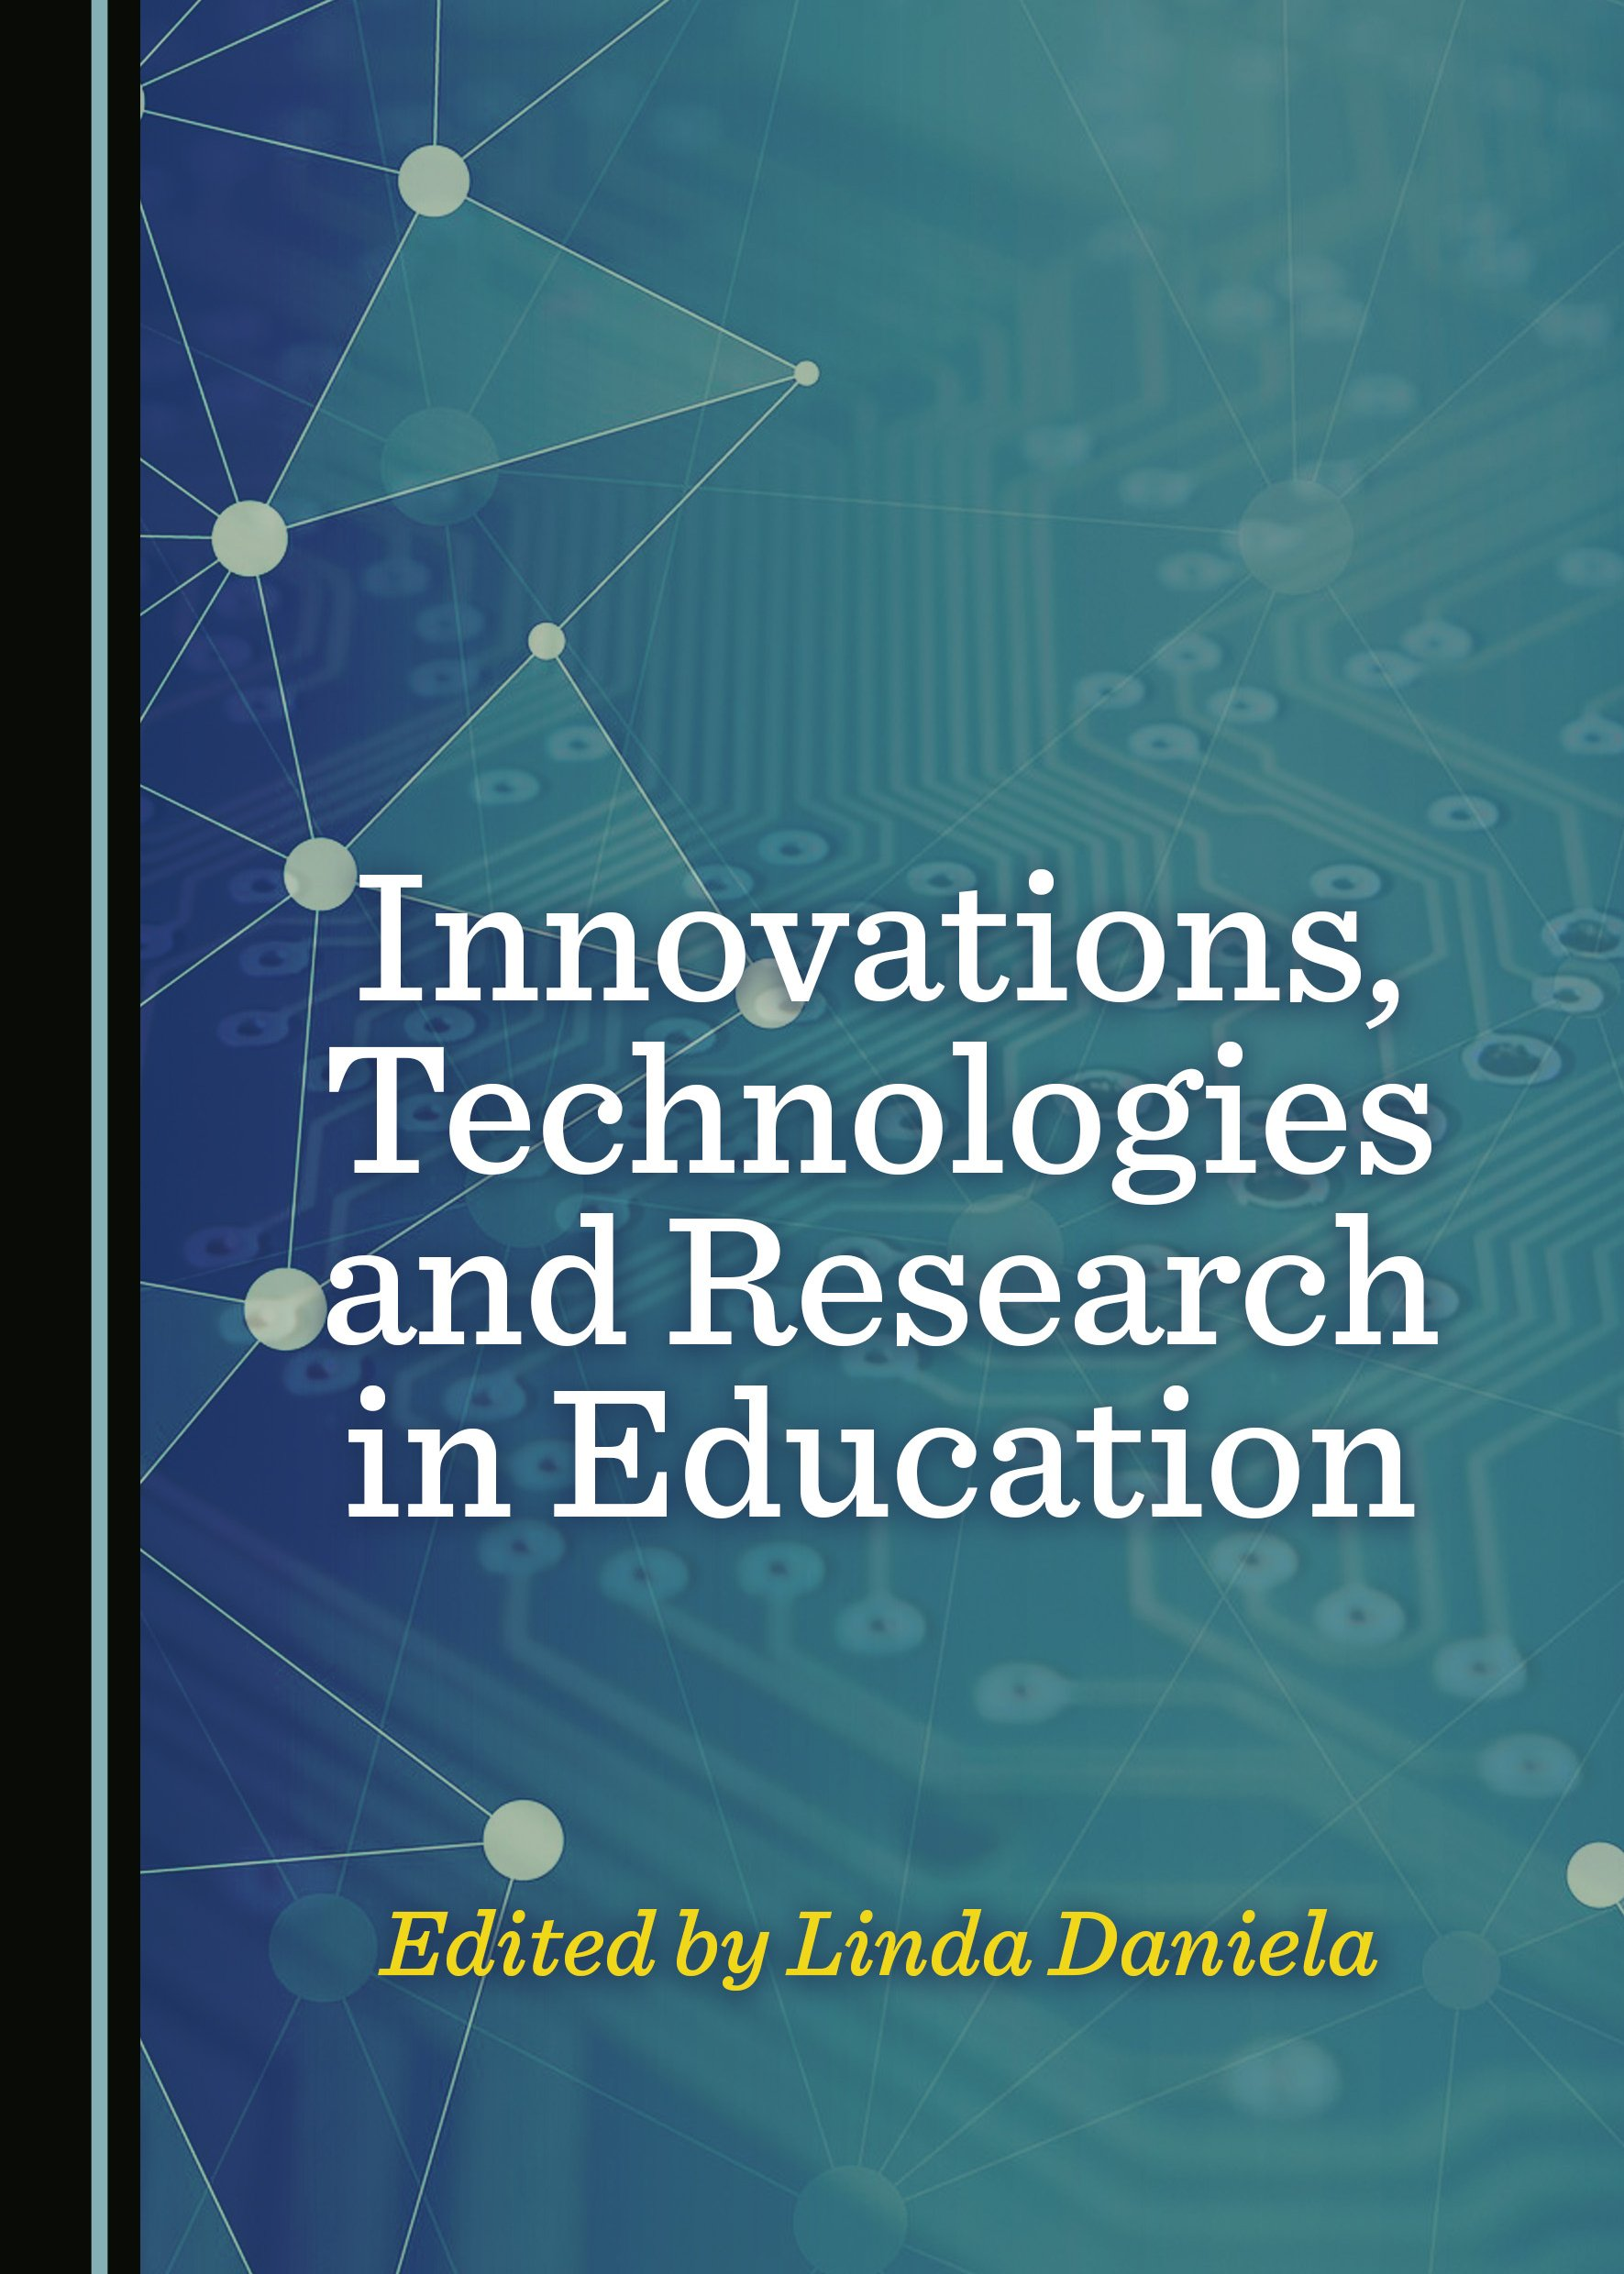 Innovations, Technologies and Research in Education